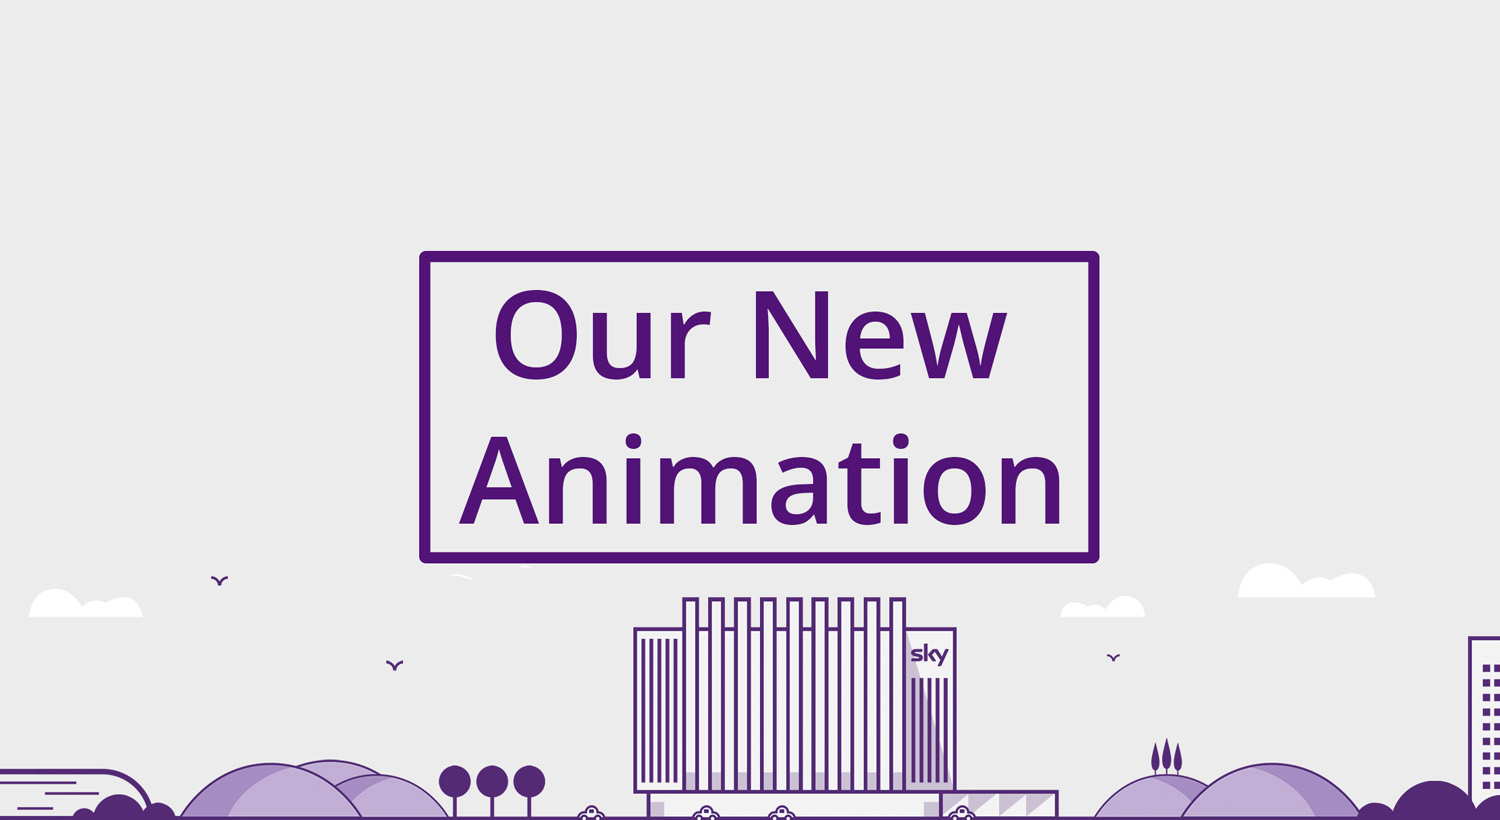 Our New Animation